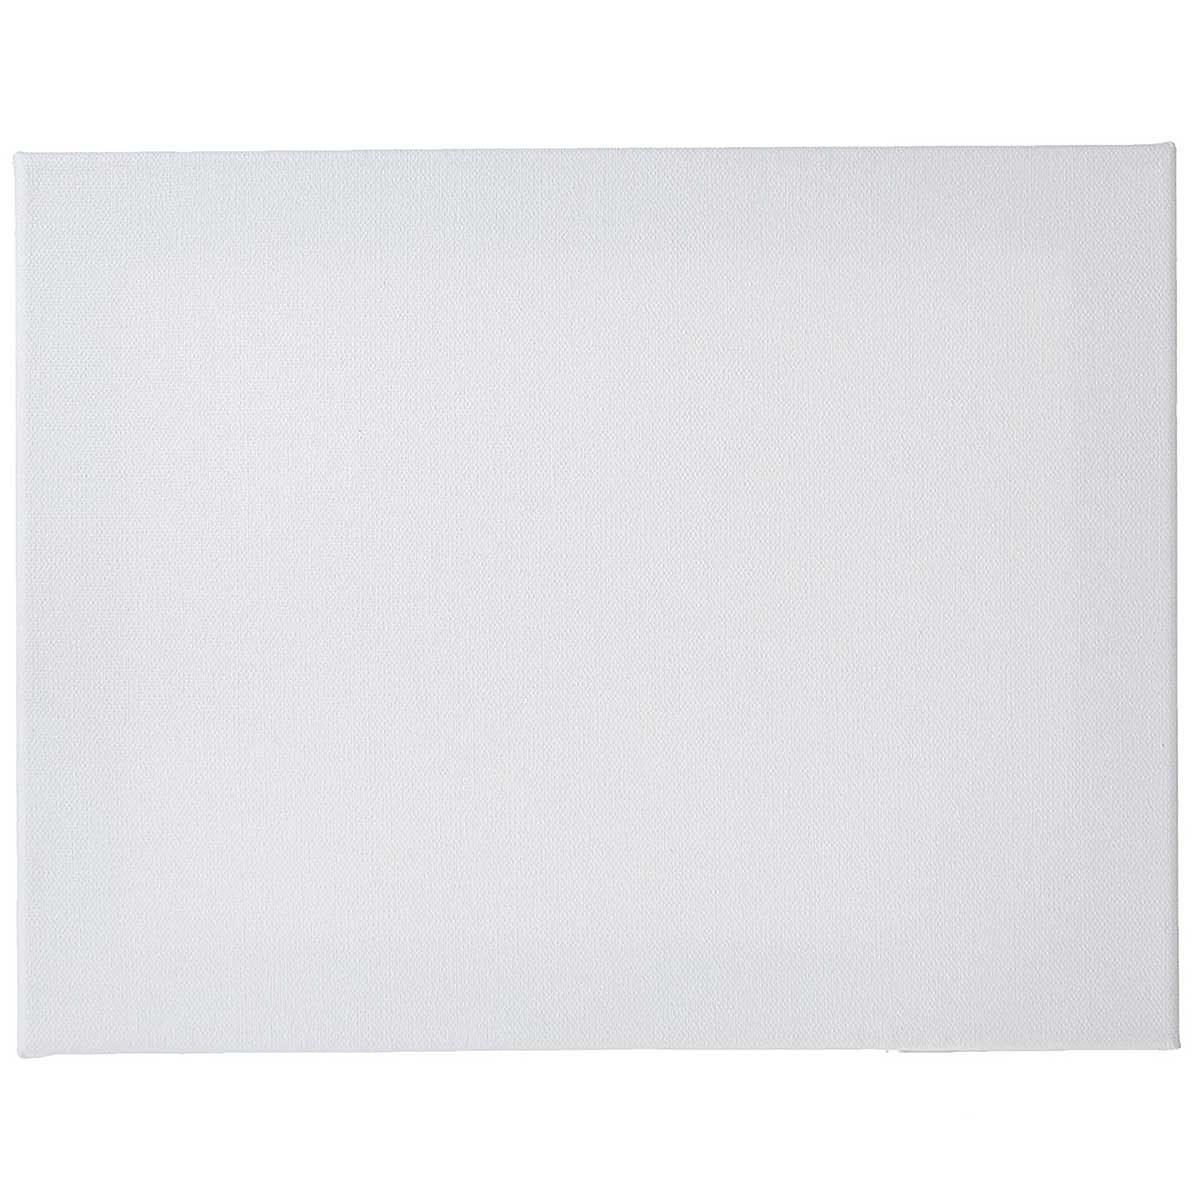 Stretched Canvas Board (12X16 Inch)